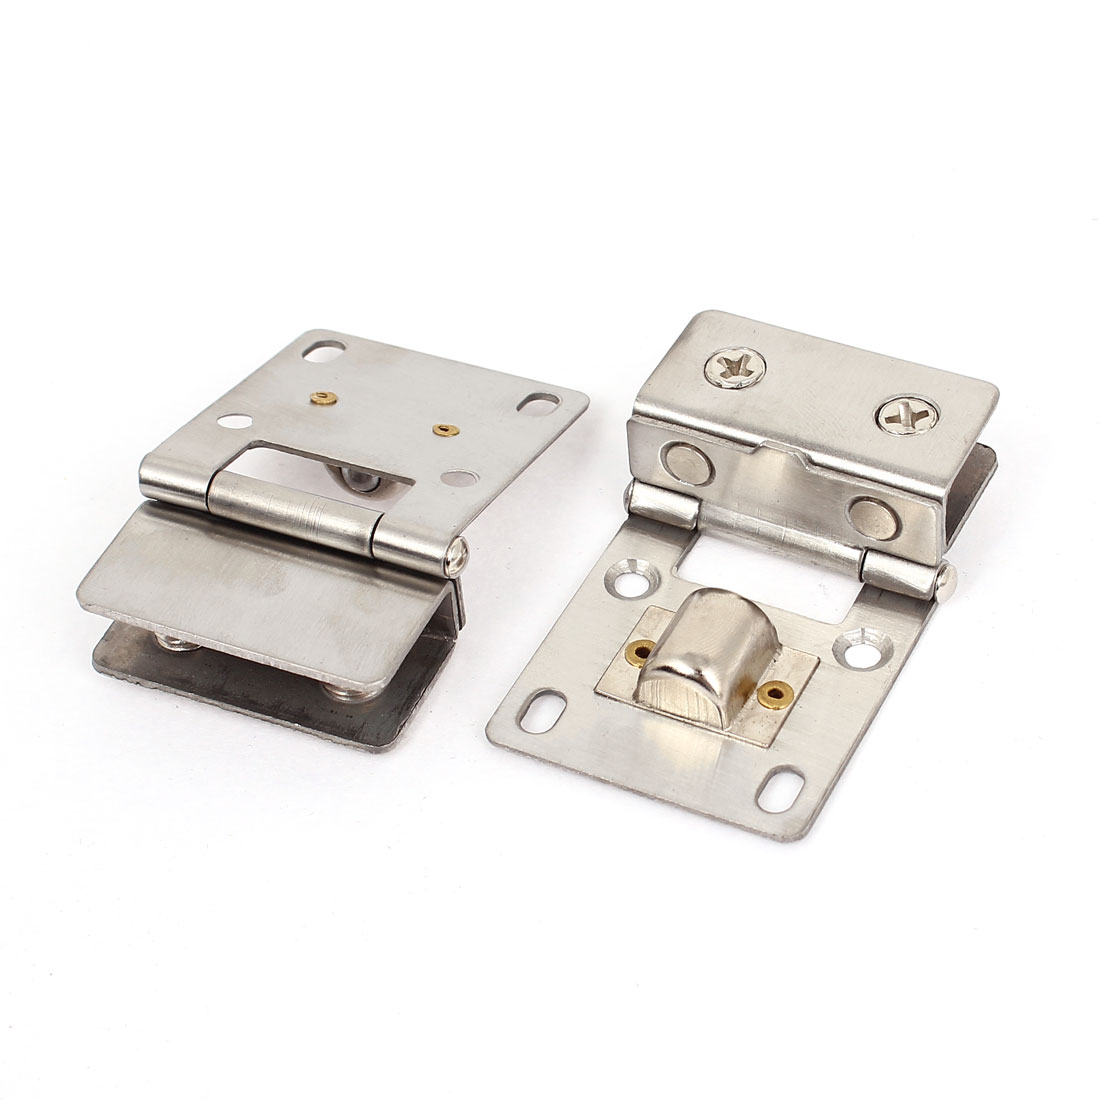 5mm-9mm Thickness Cupboard Cabinet Glass Pivot Door Hinge Clamps 2 Pcs